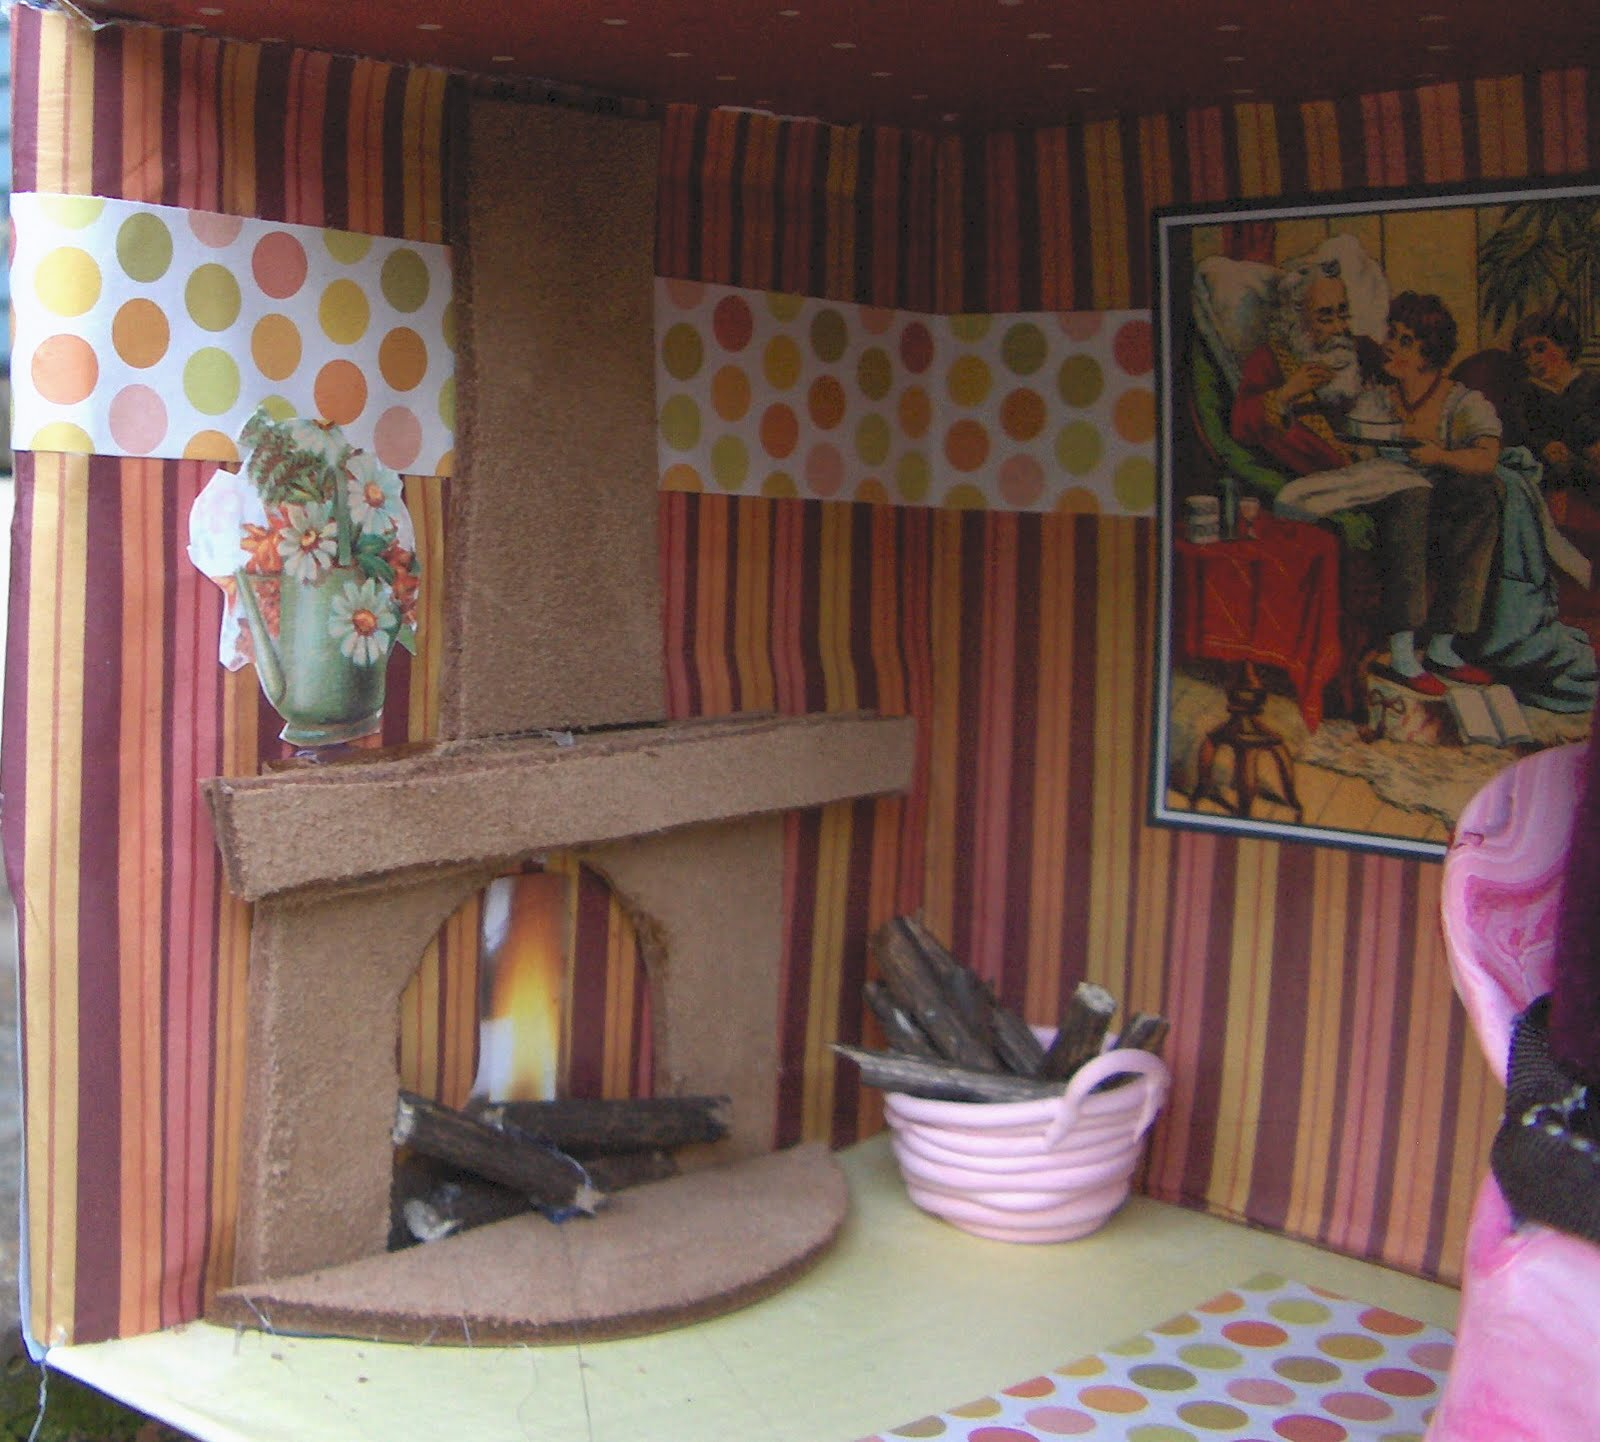 Doll House Homemade – AMJ on small house house design, shoe box house craft, shoe boxes with a z, cardboard house design, shoe box house furniture, shoe box stage design, paper box design, shoe logo design, shoe box living room design, best friend shoe box design,